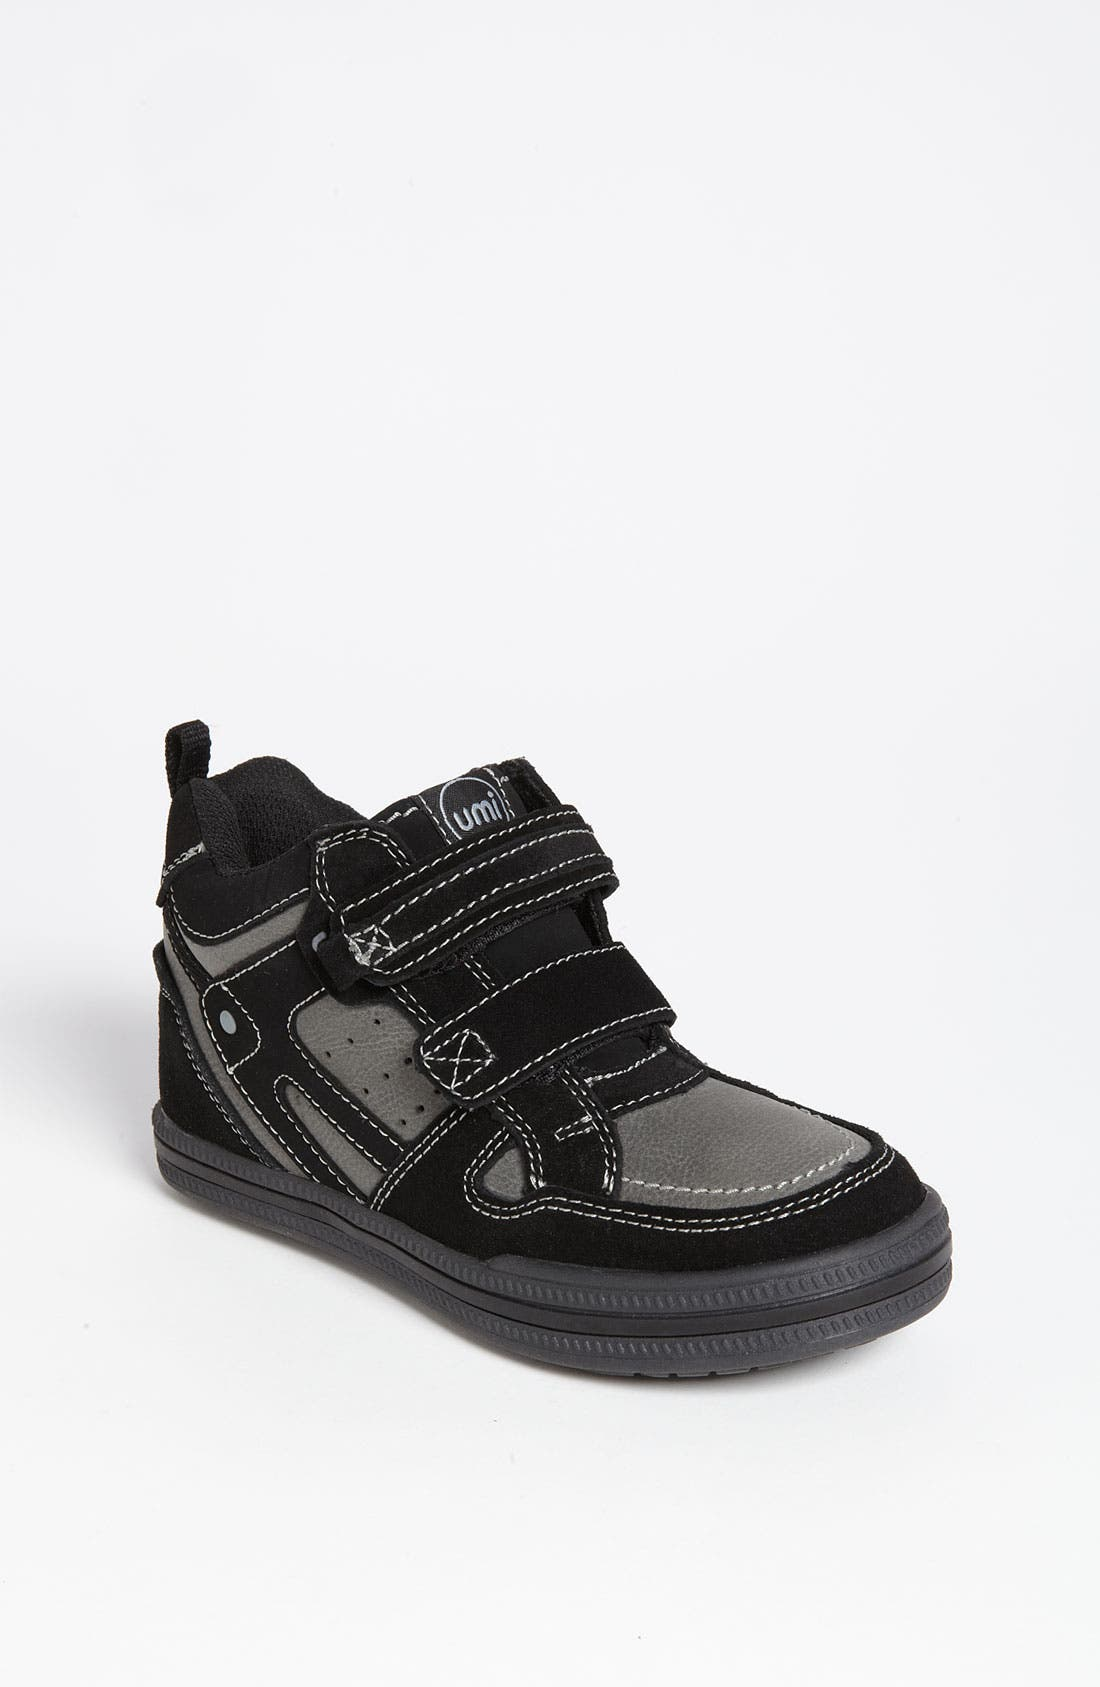 Alternate Image 1 Selected - Umi 'Torrance' Slip-On (Toddler, Little Kid & Big Kid)